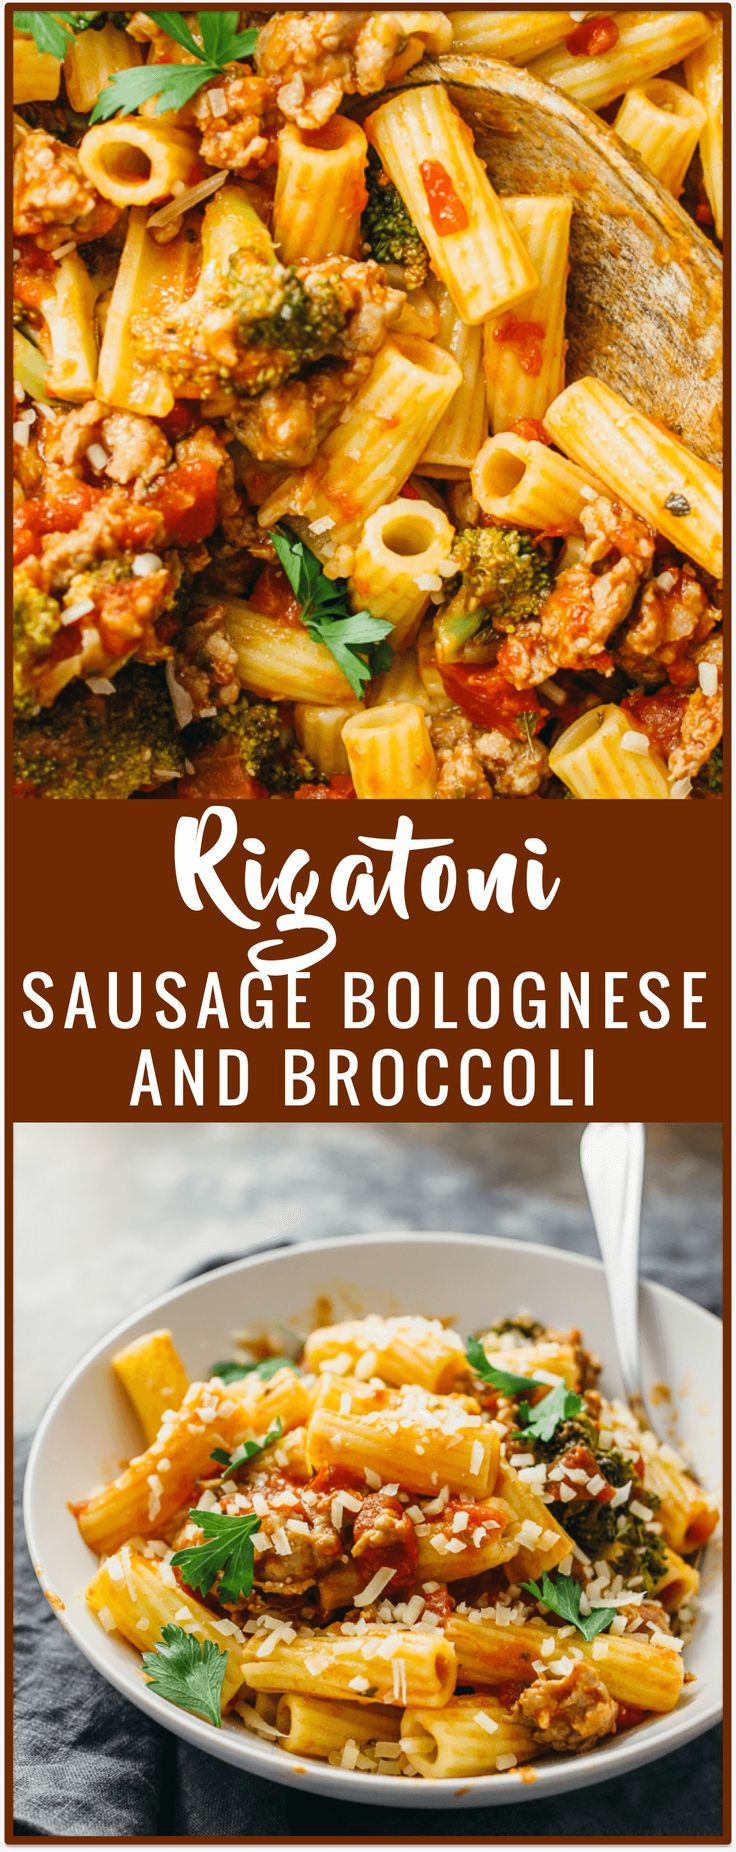 Rigatoni with sausage bolognese and broccoli - Use sausage for your next rigatoni bolognese! It's easy to swap out your typical ground beef for Italian sausage. This pasta recipe shows you how to make sausage bolognese with broccoli, crushed tomatoes, garlic, and a good heaping of spicy red pepper. - savorytooth.com